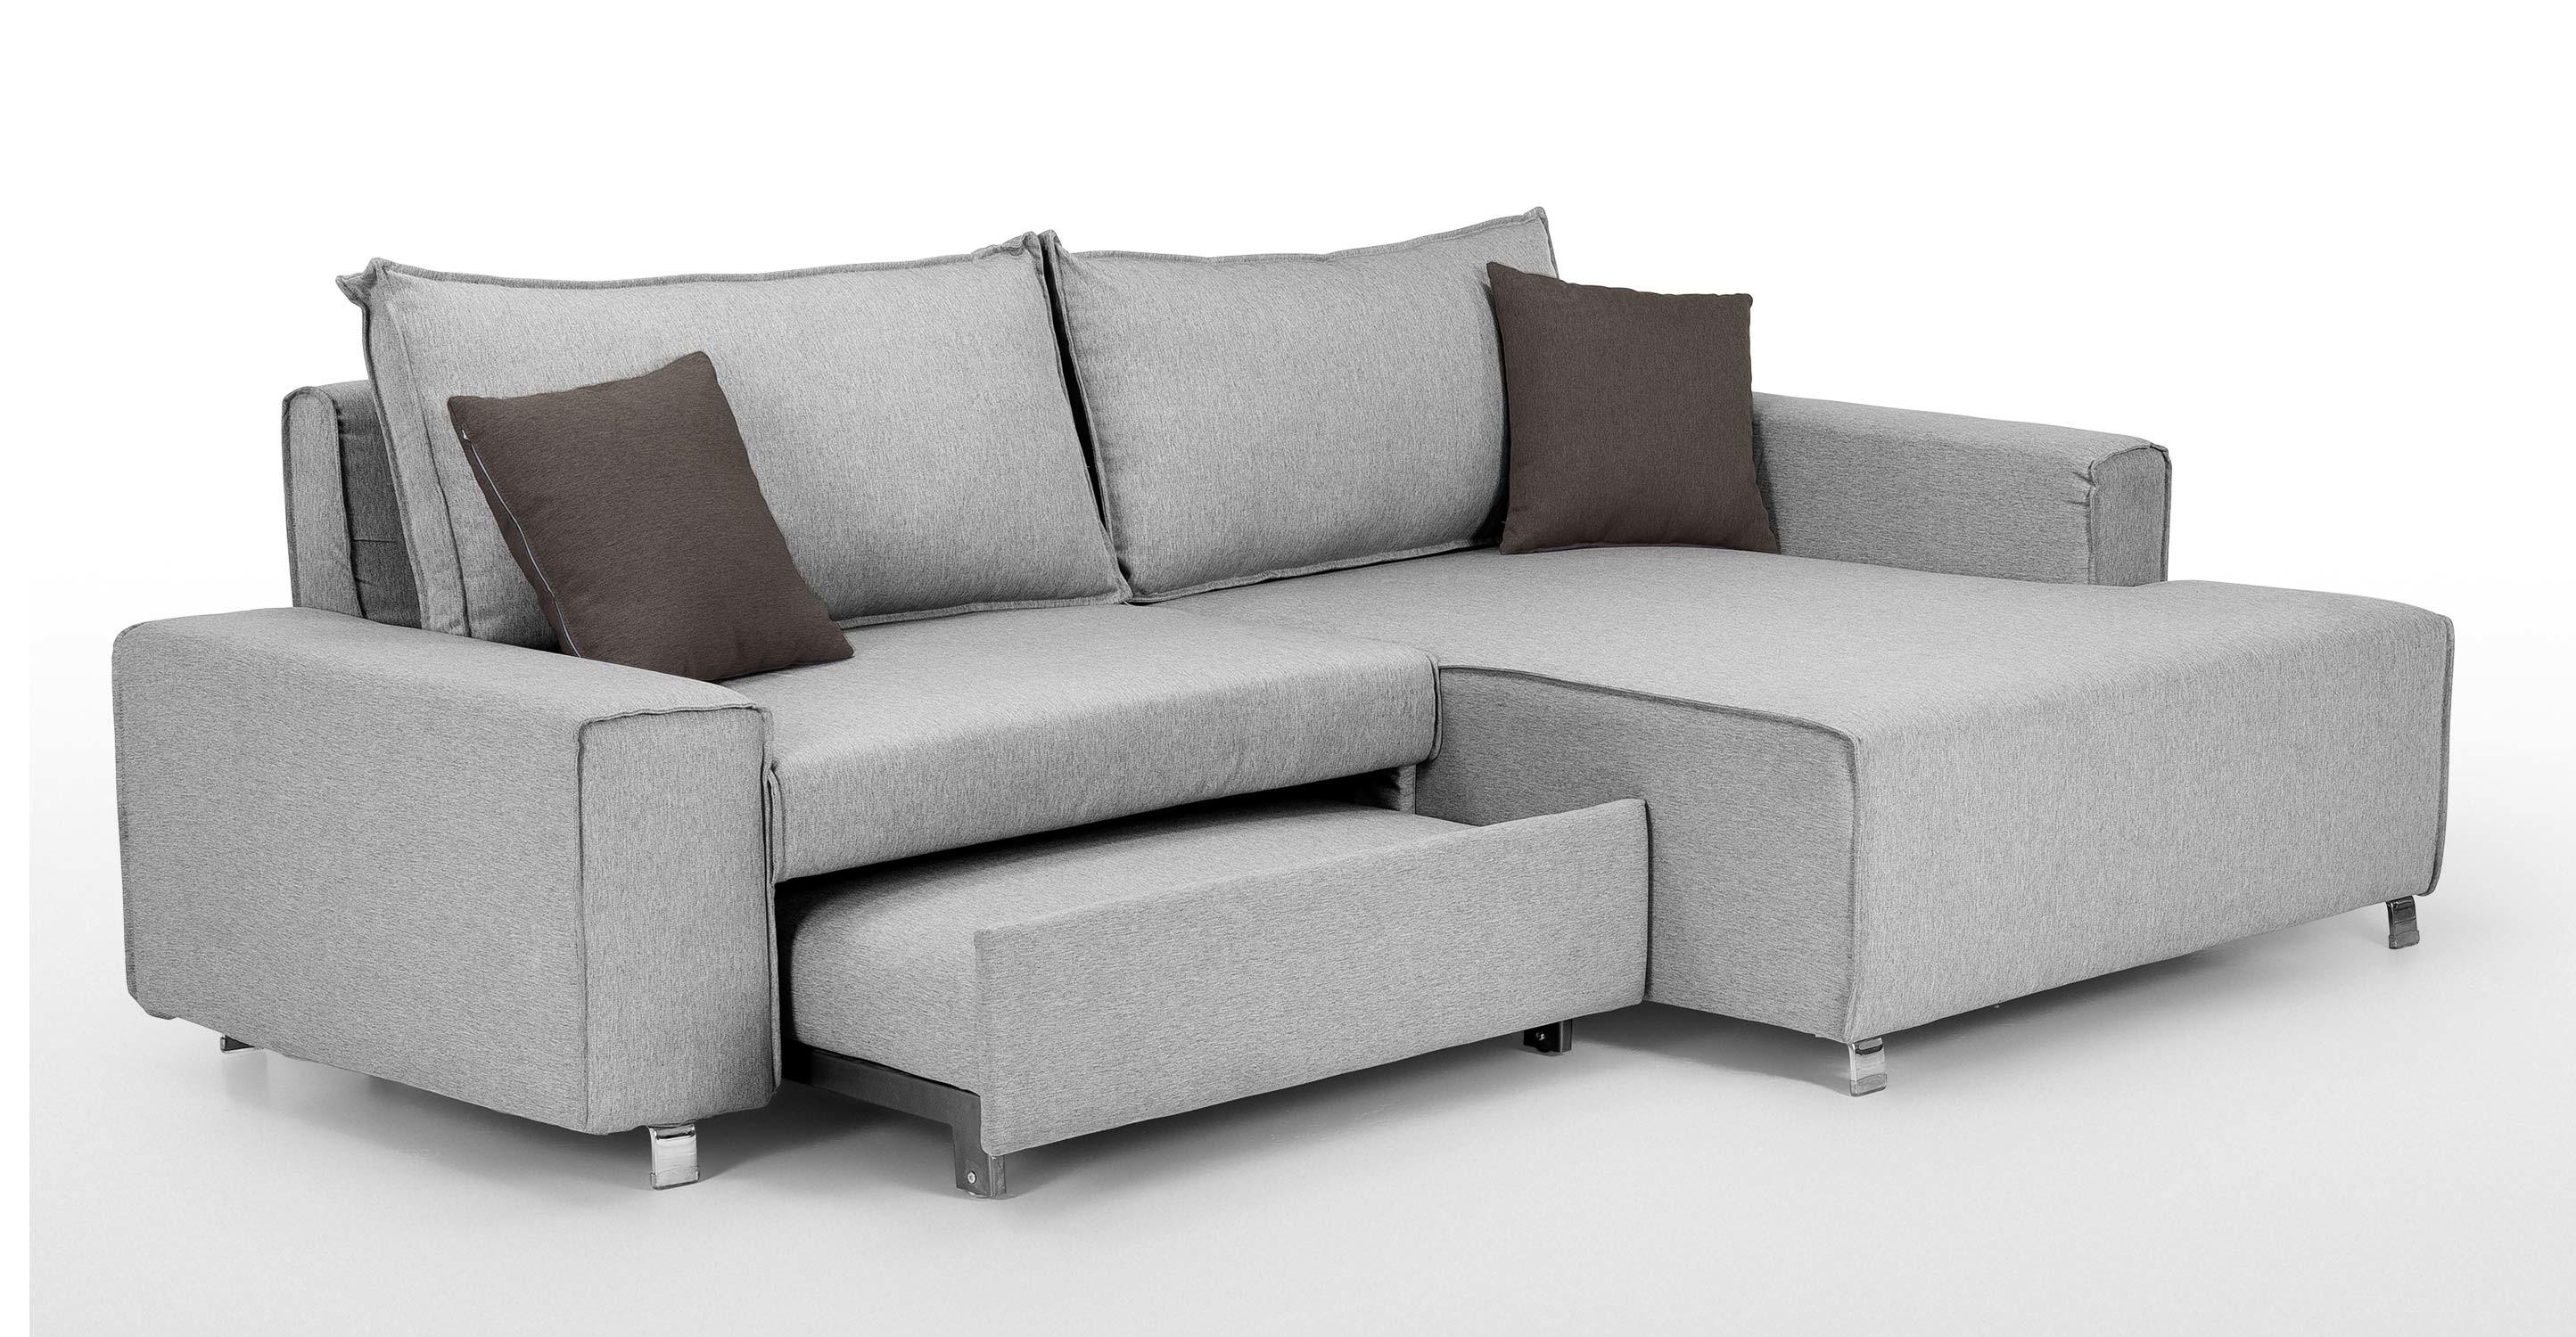 20 choices of corner sofa beds sofa ideas 17289 | small corner sofa for bedroom tehranmix decoration within corner sofa beds